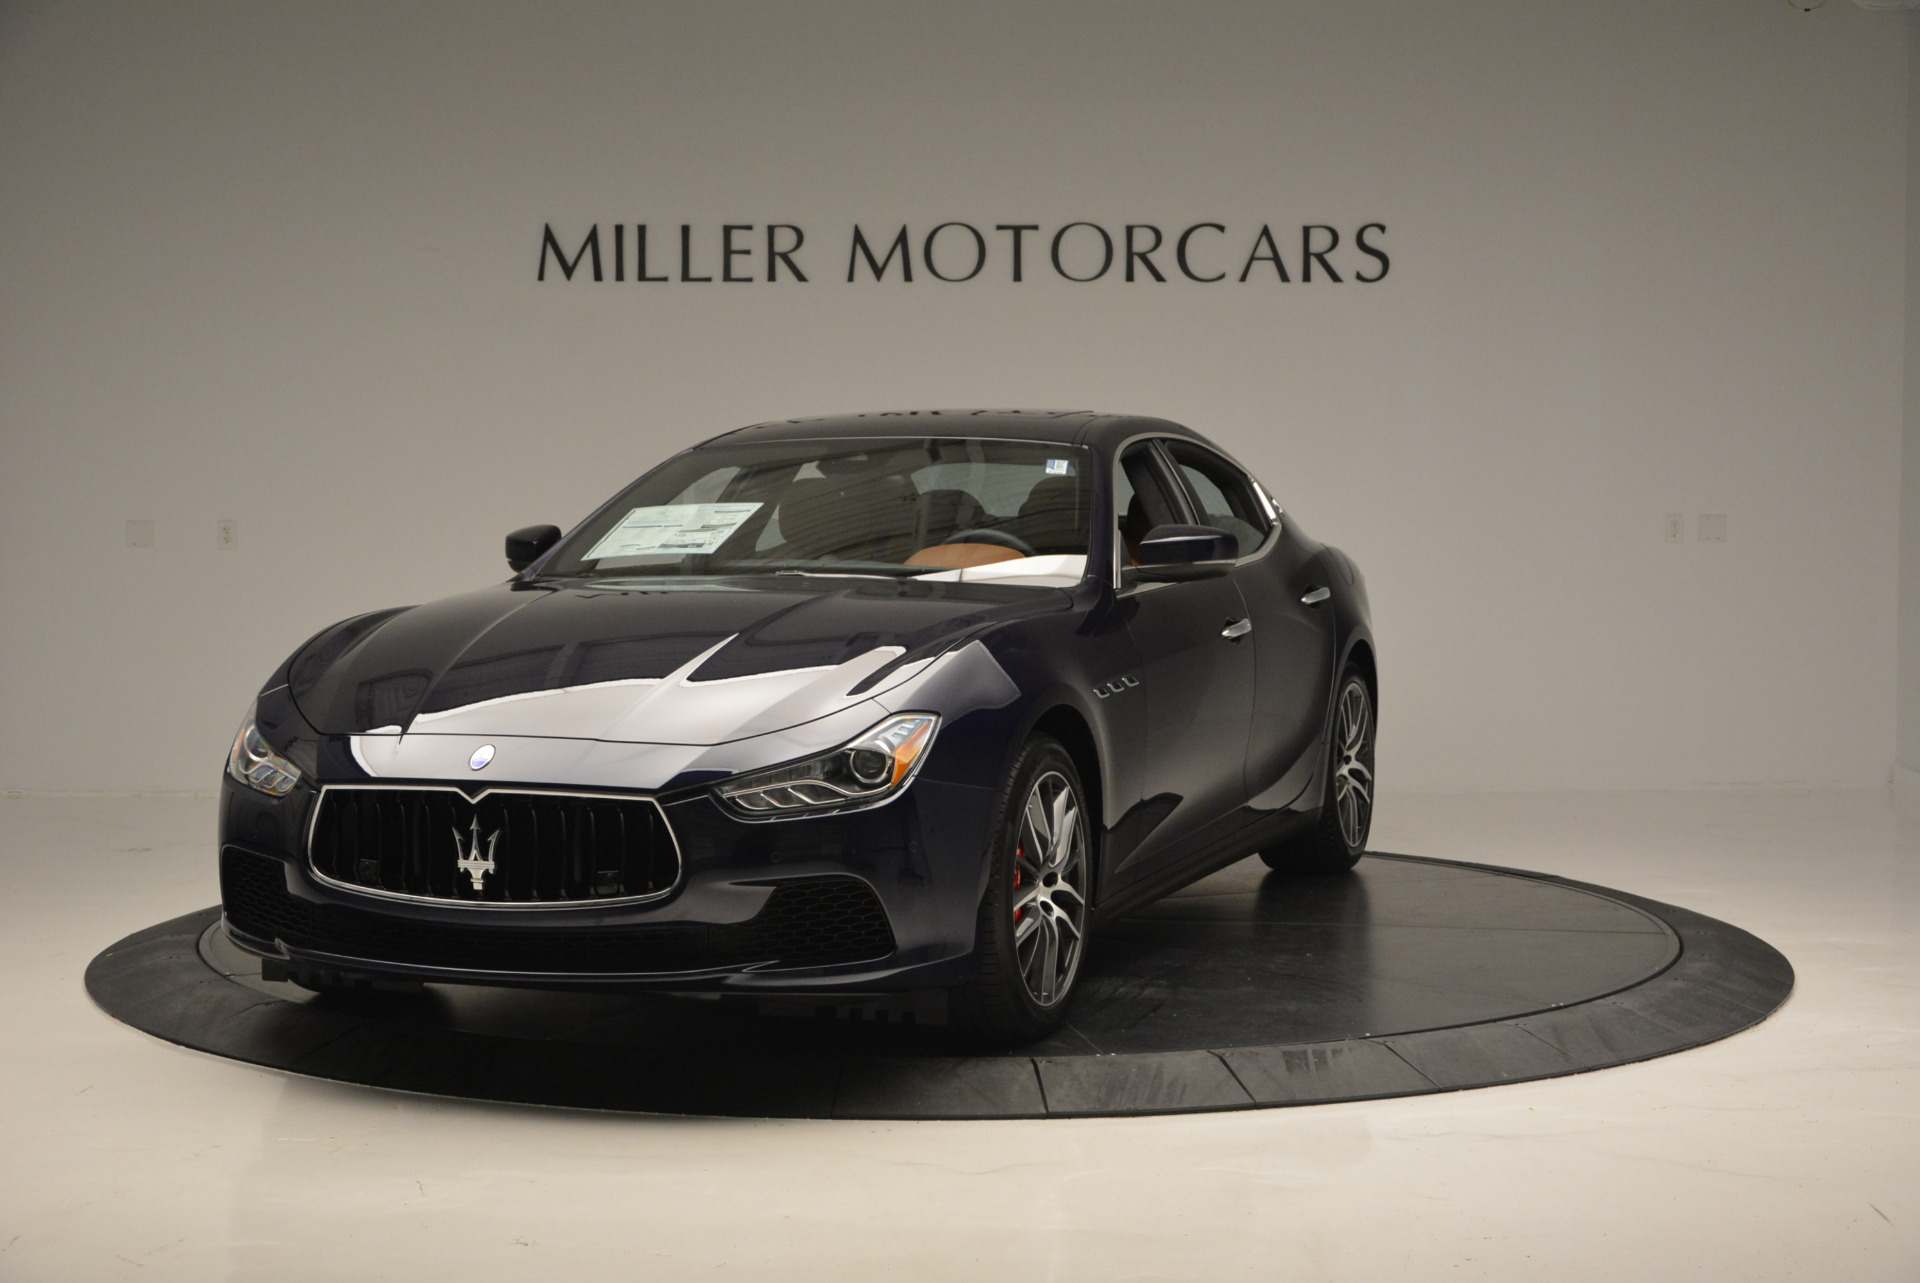 Used 2017 Maserati Ghibli S Q4 - EX Loaner for sale Sold at Alfa Romeo of Westport in Westport CT 06880 1